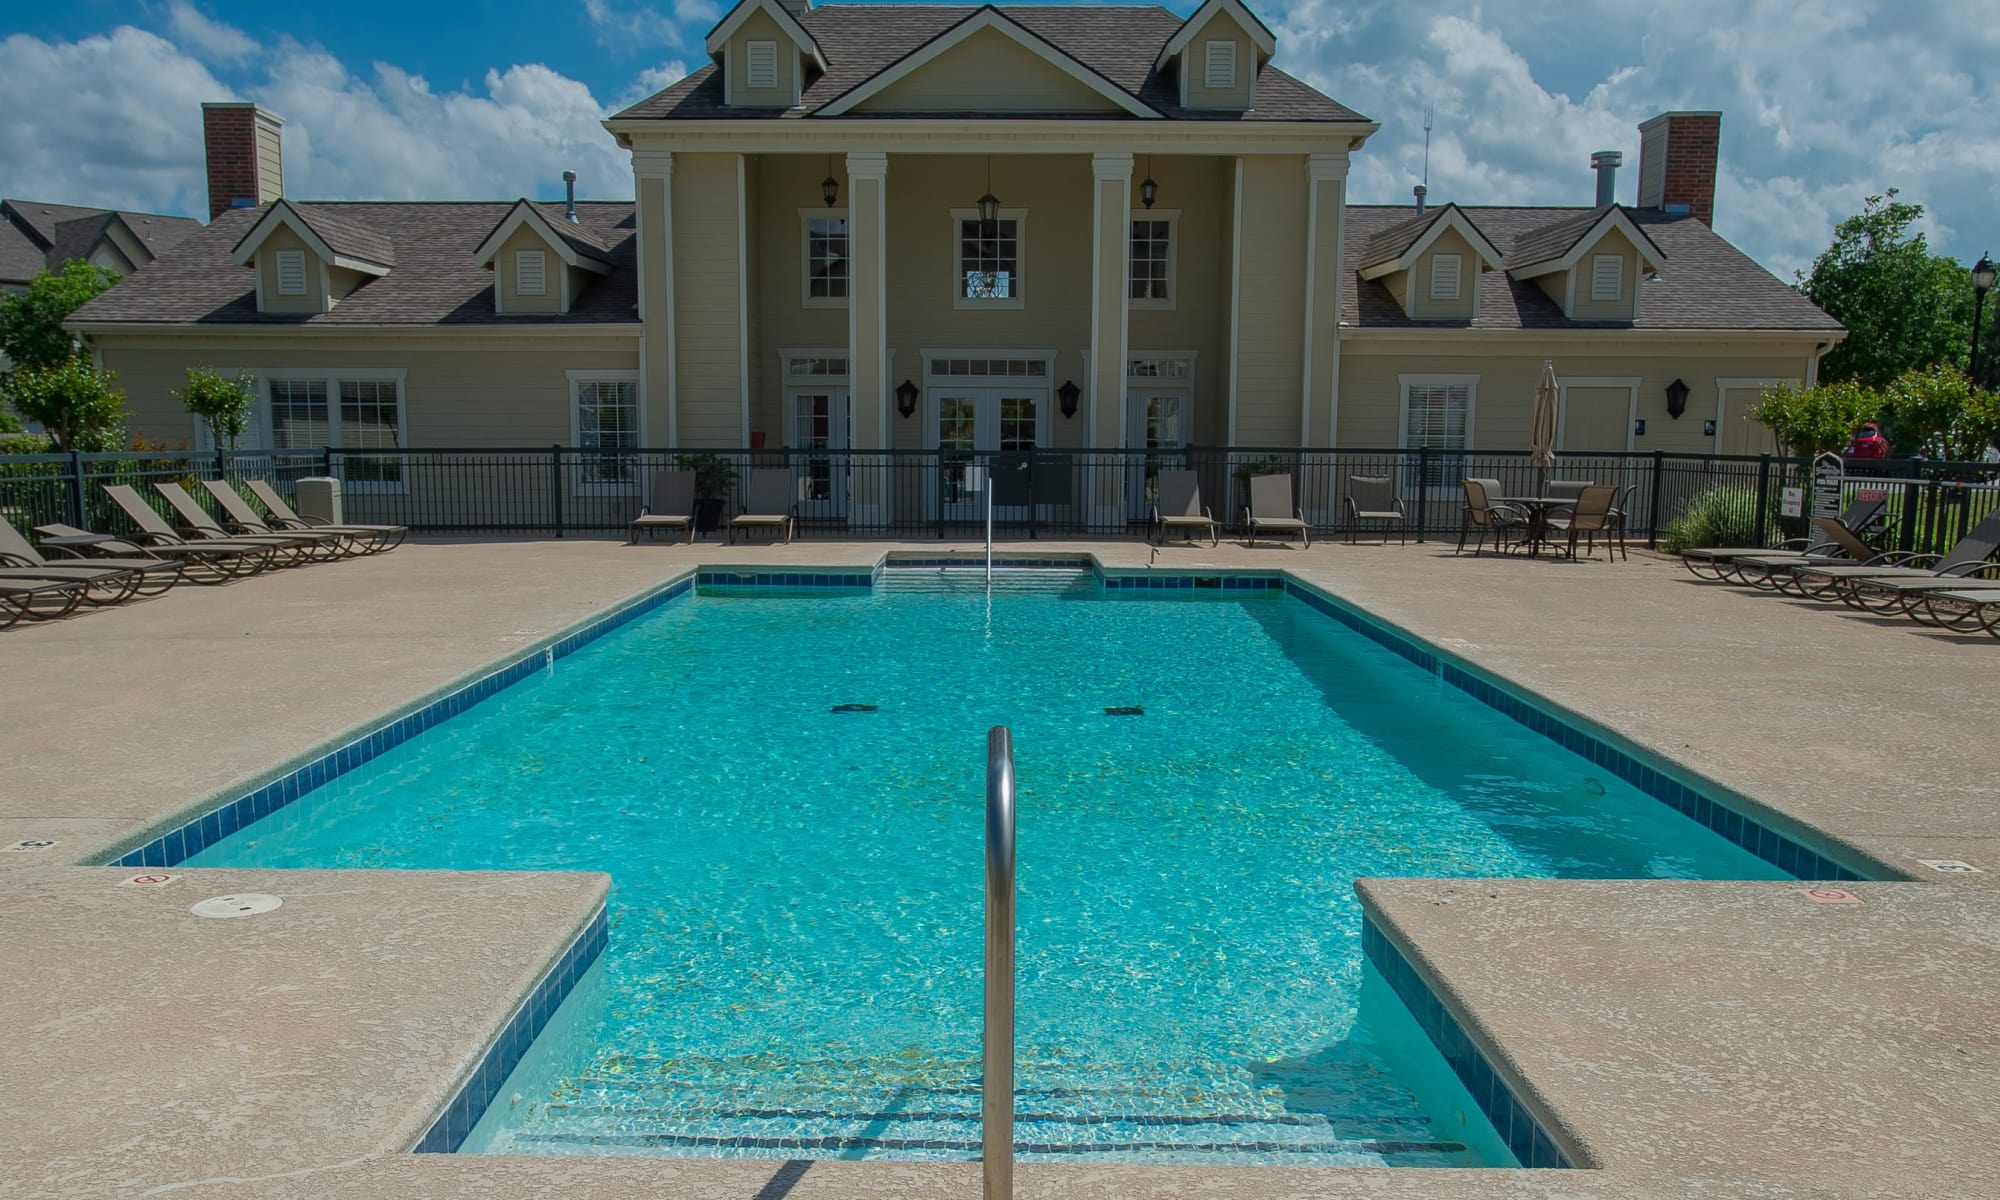 Apartments at Villas at Stonebridge in Edmond, Oklahoma